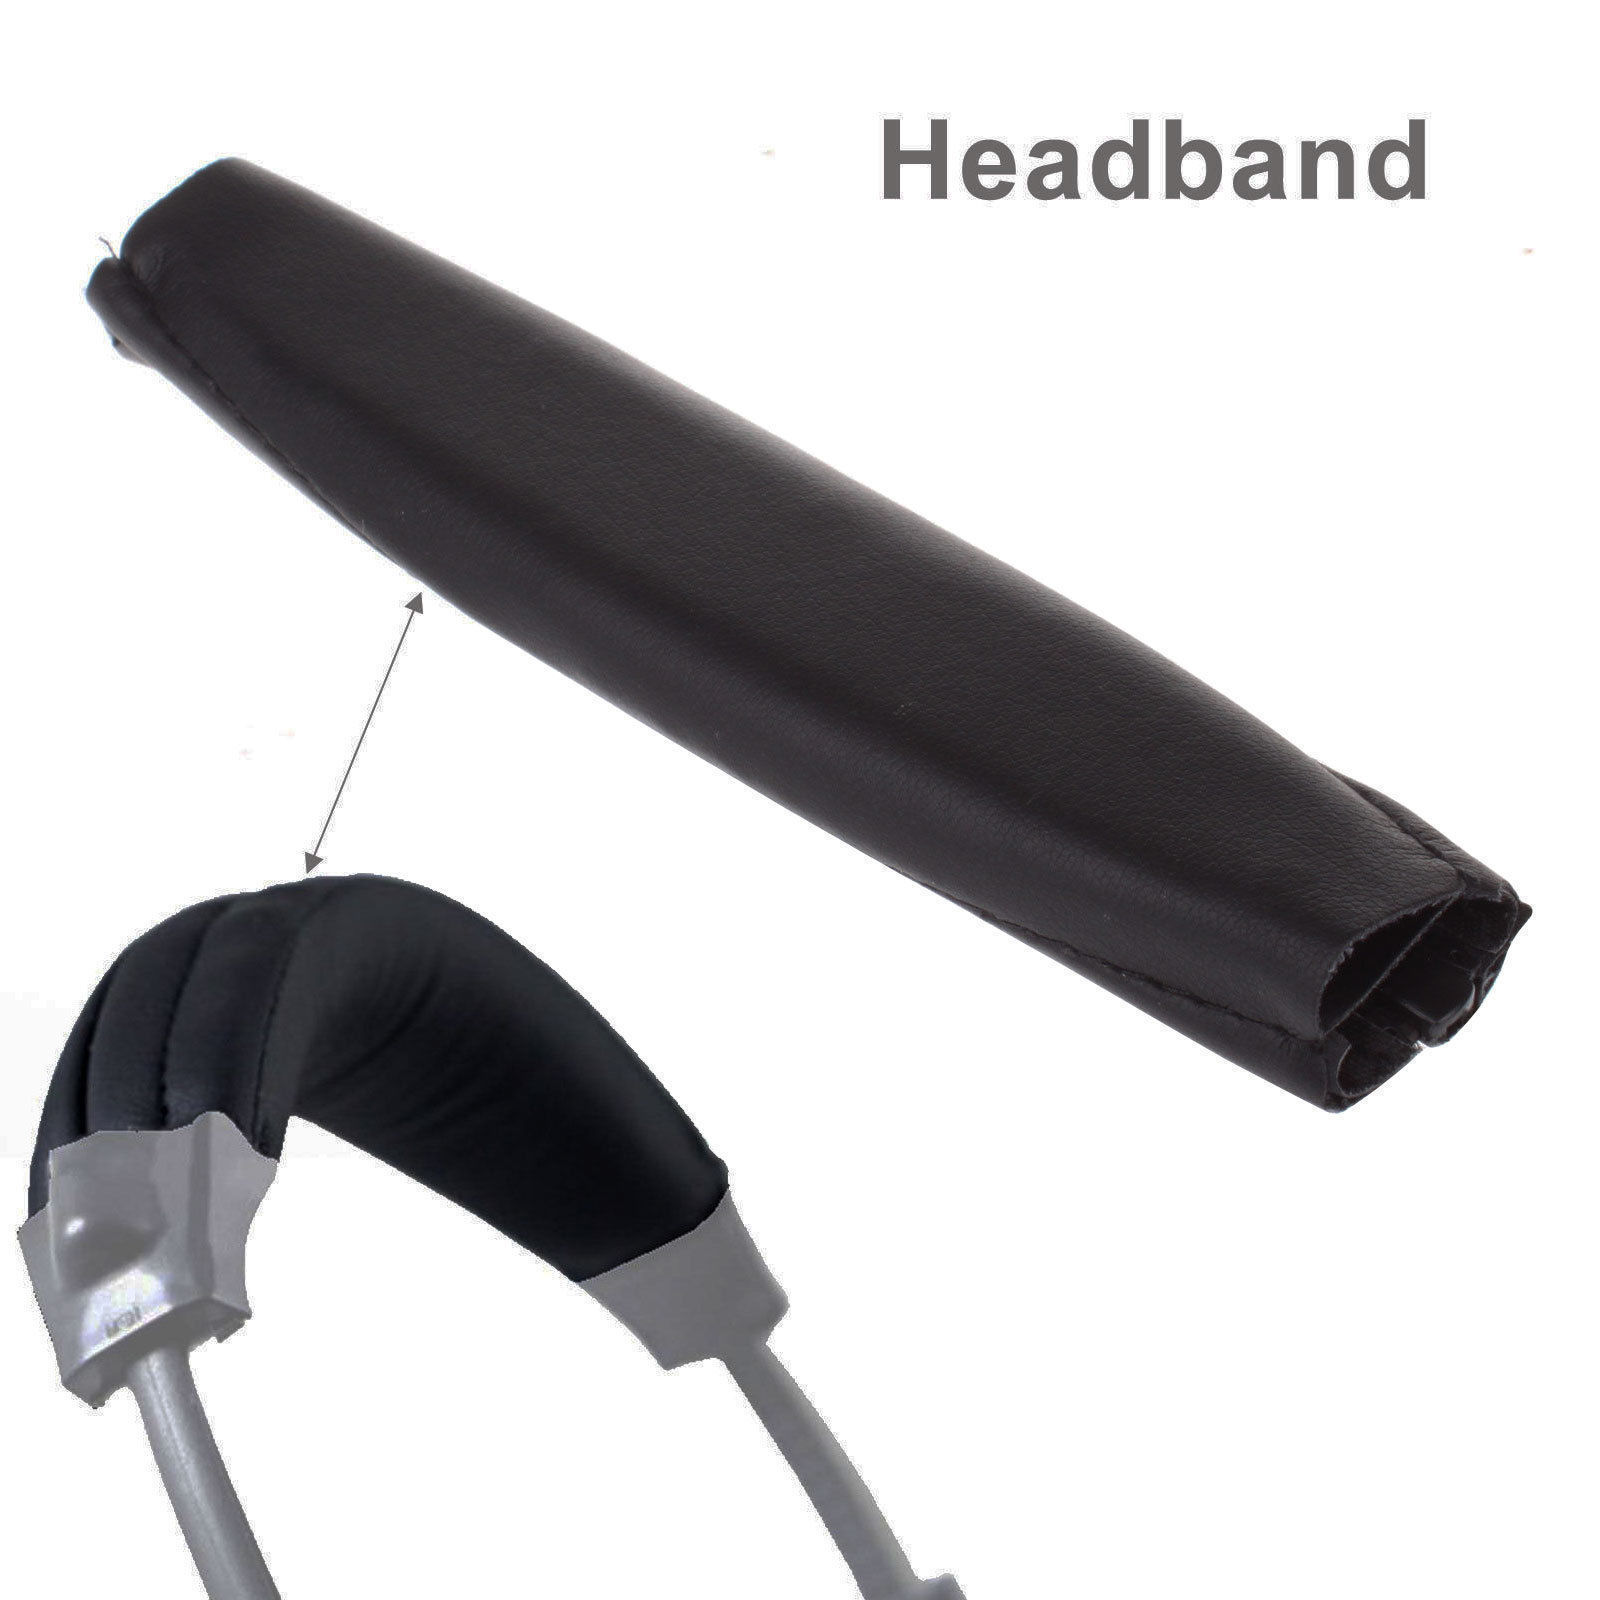 Replacement-Ear-Pads-Cushion-Audio-Cable-Cover-for-Bose-QC15-QC25-QC35-Headphone thumbnail 8